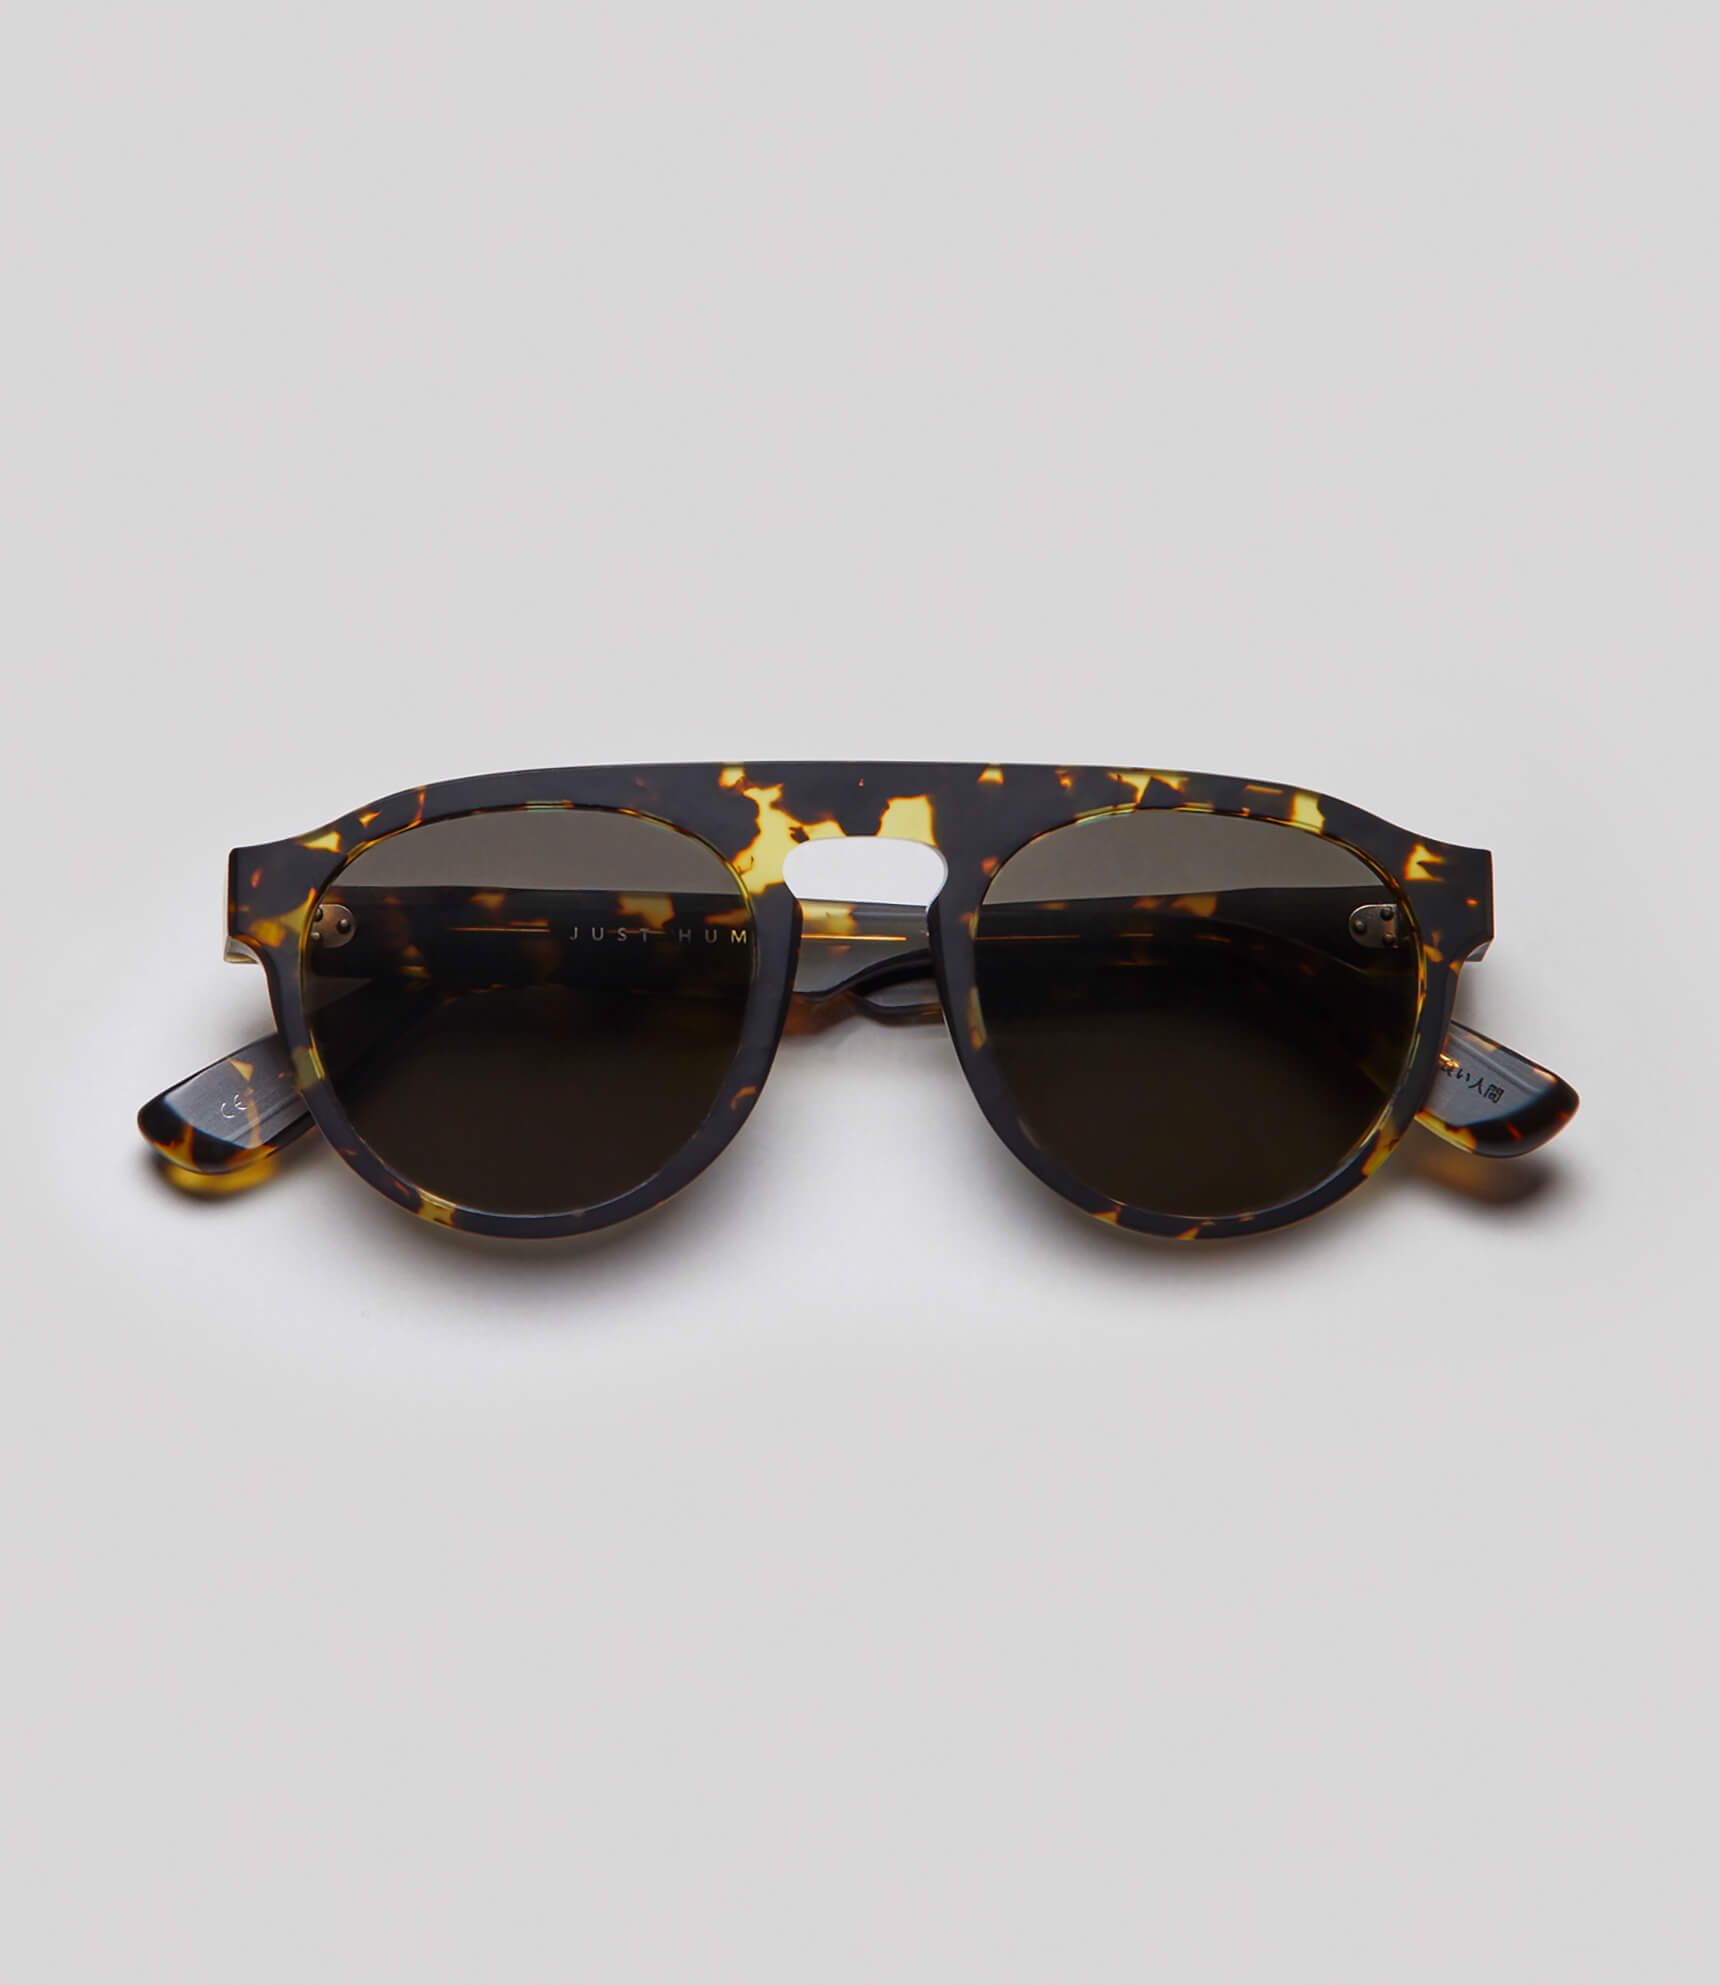 Tortoise aviator sunglasses eco friendly sustainable fashion made in Japan unisex sunglasses for men sunglasses for women and blue light filter